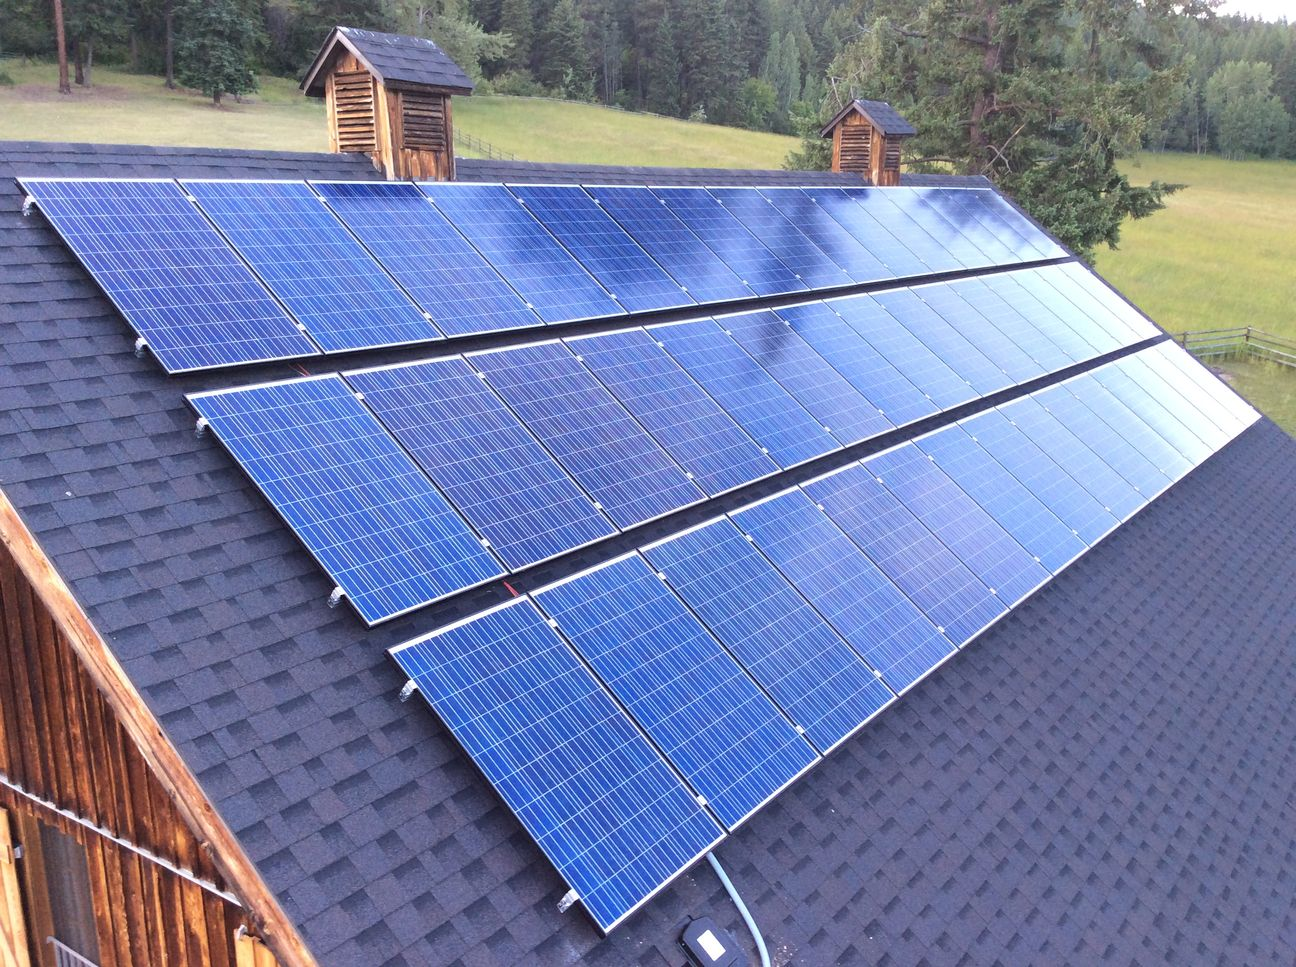 Grid Tie Solar Power Installation With 45 Solar Panels And